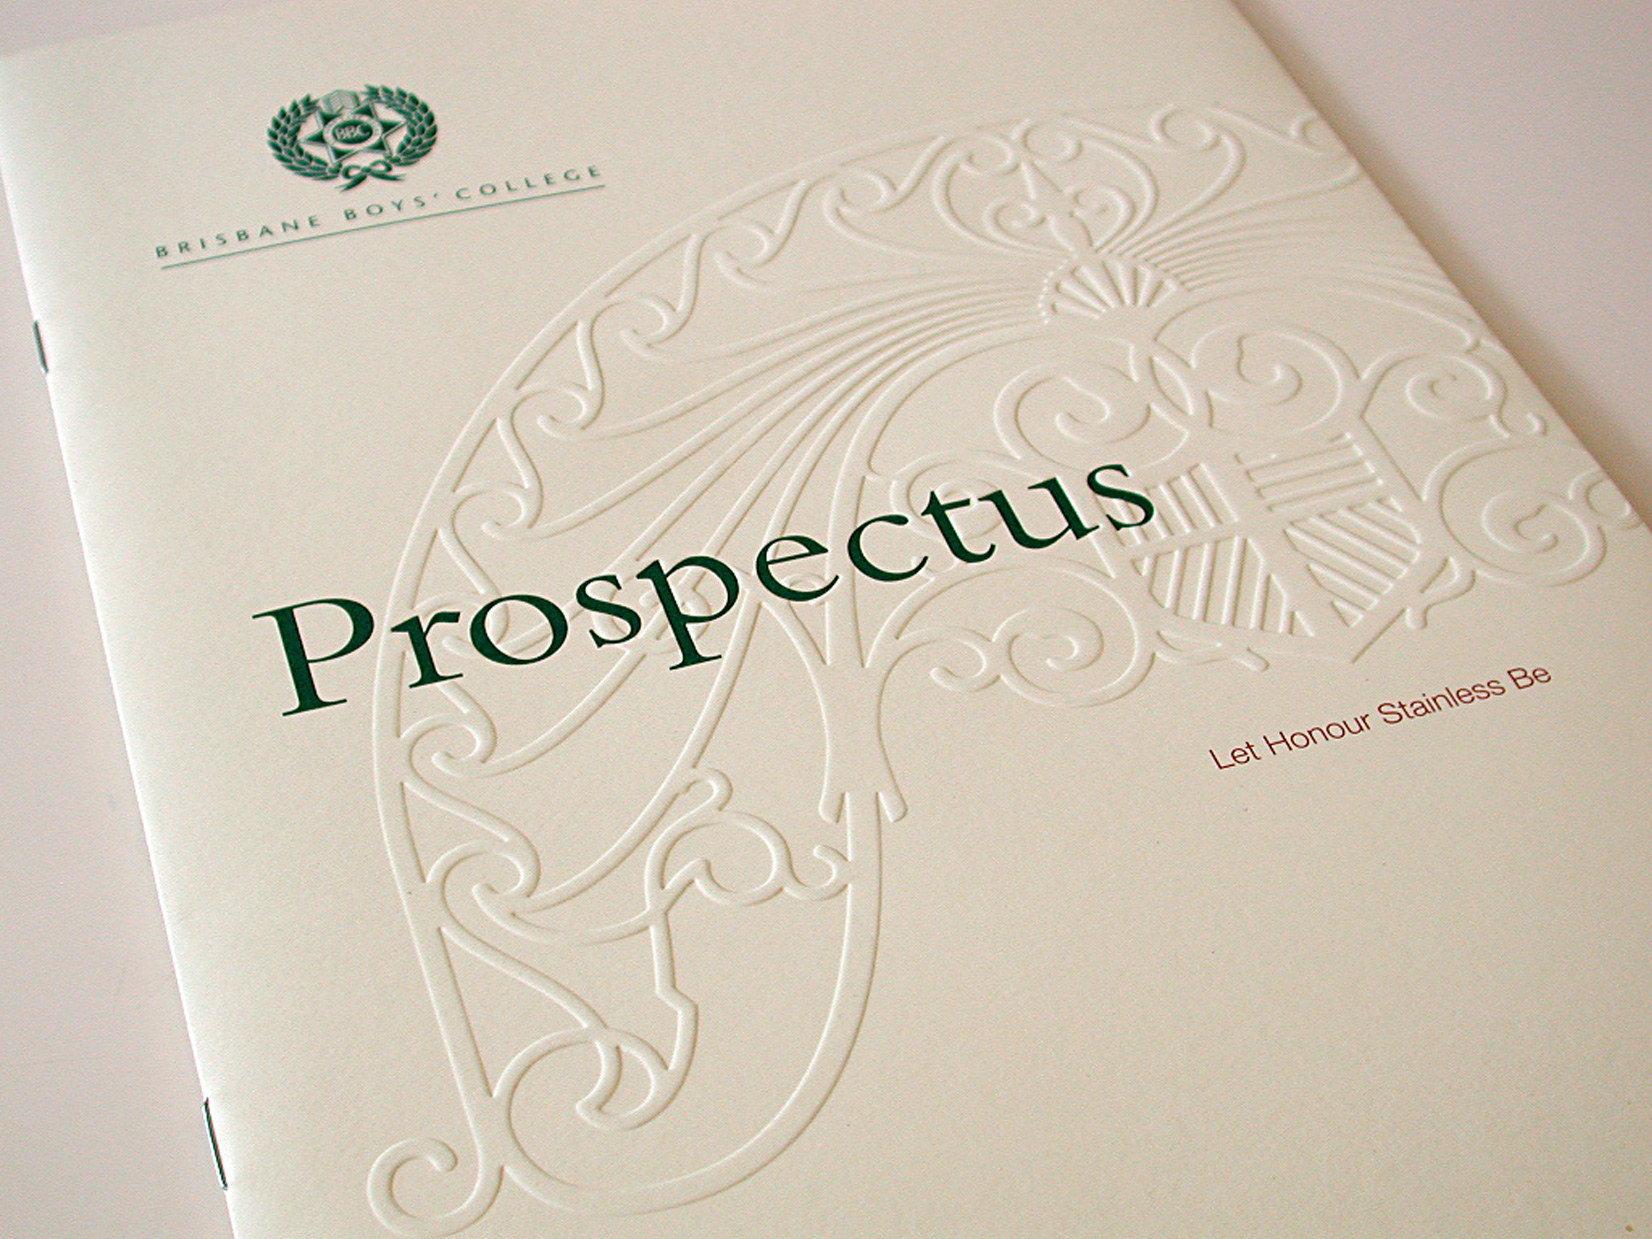 BBC Prospectus cover showing embossing